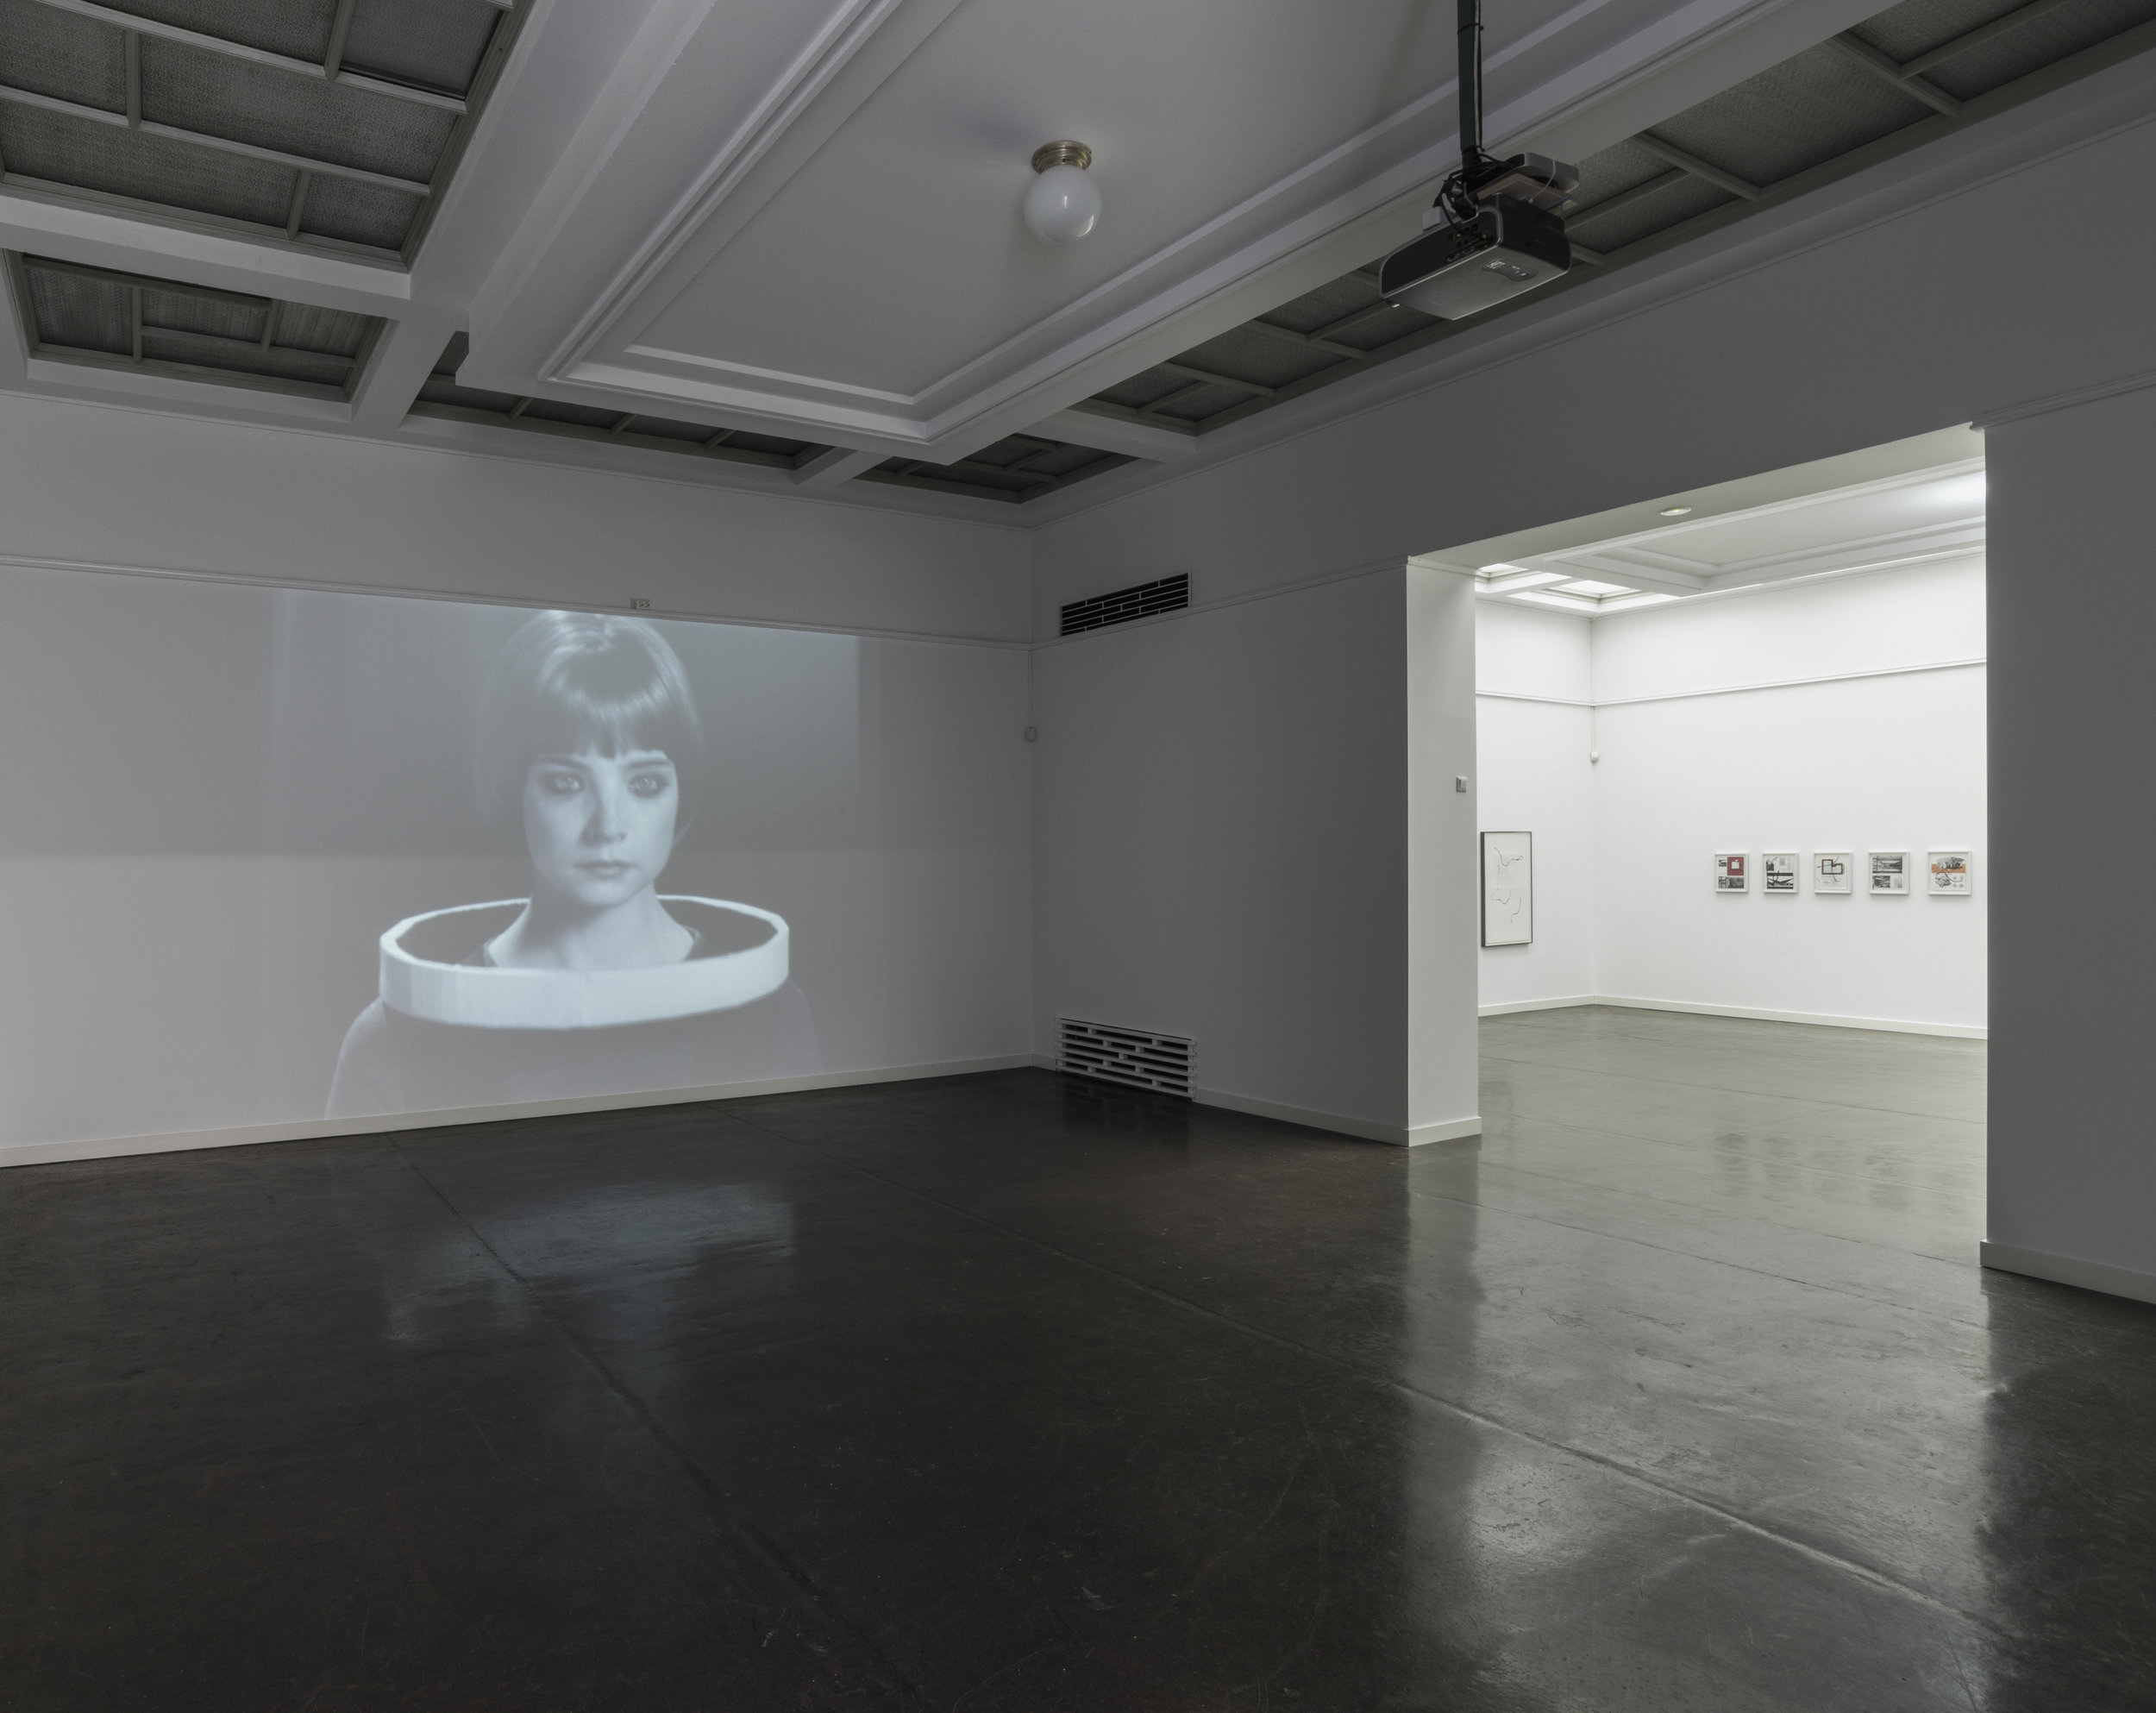 An Everywhere of Silver ,installation view, Proverbs for Ouroboros, Trondheim Kunstmuseum, 2016